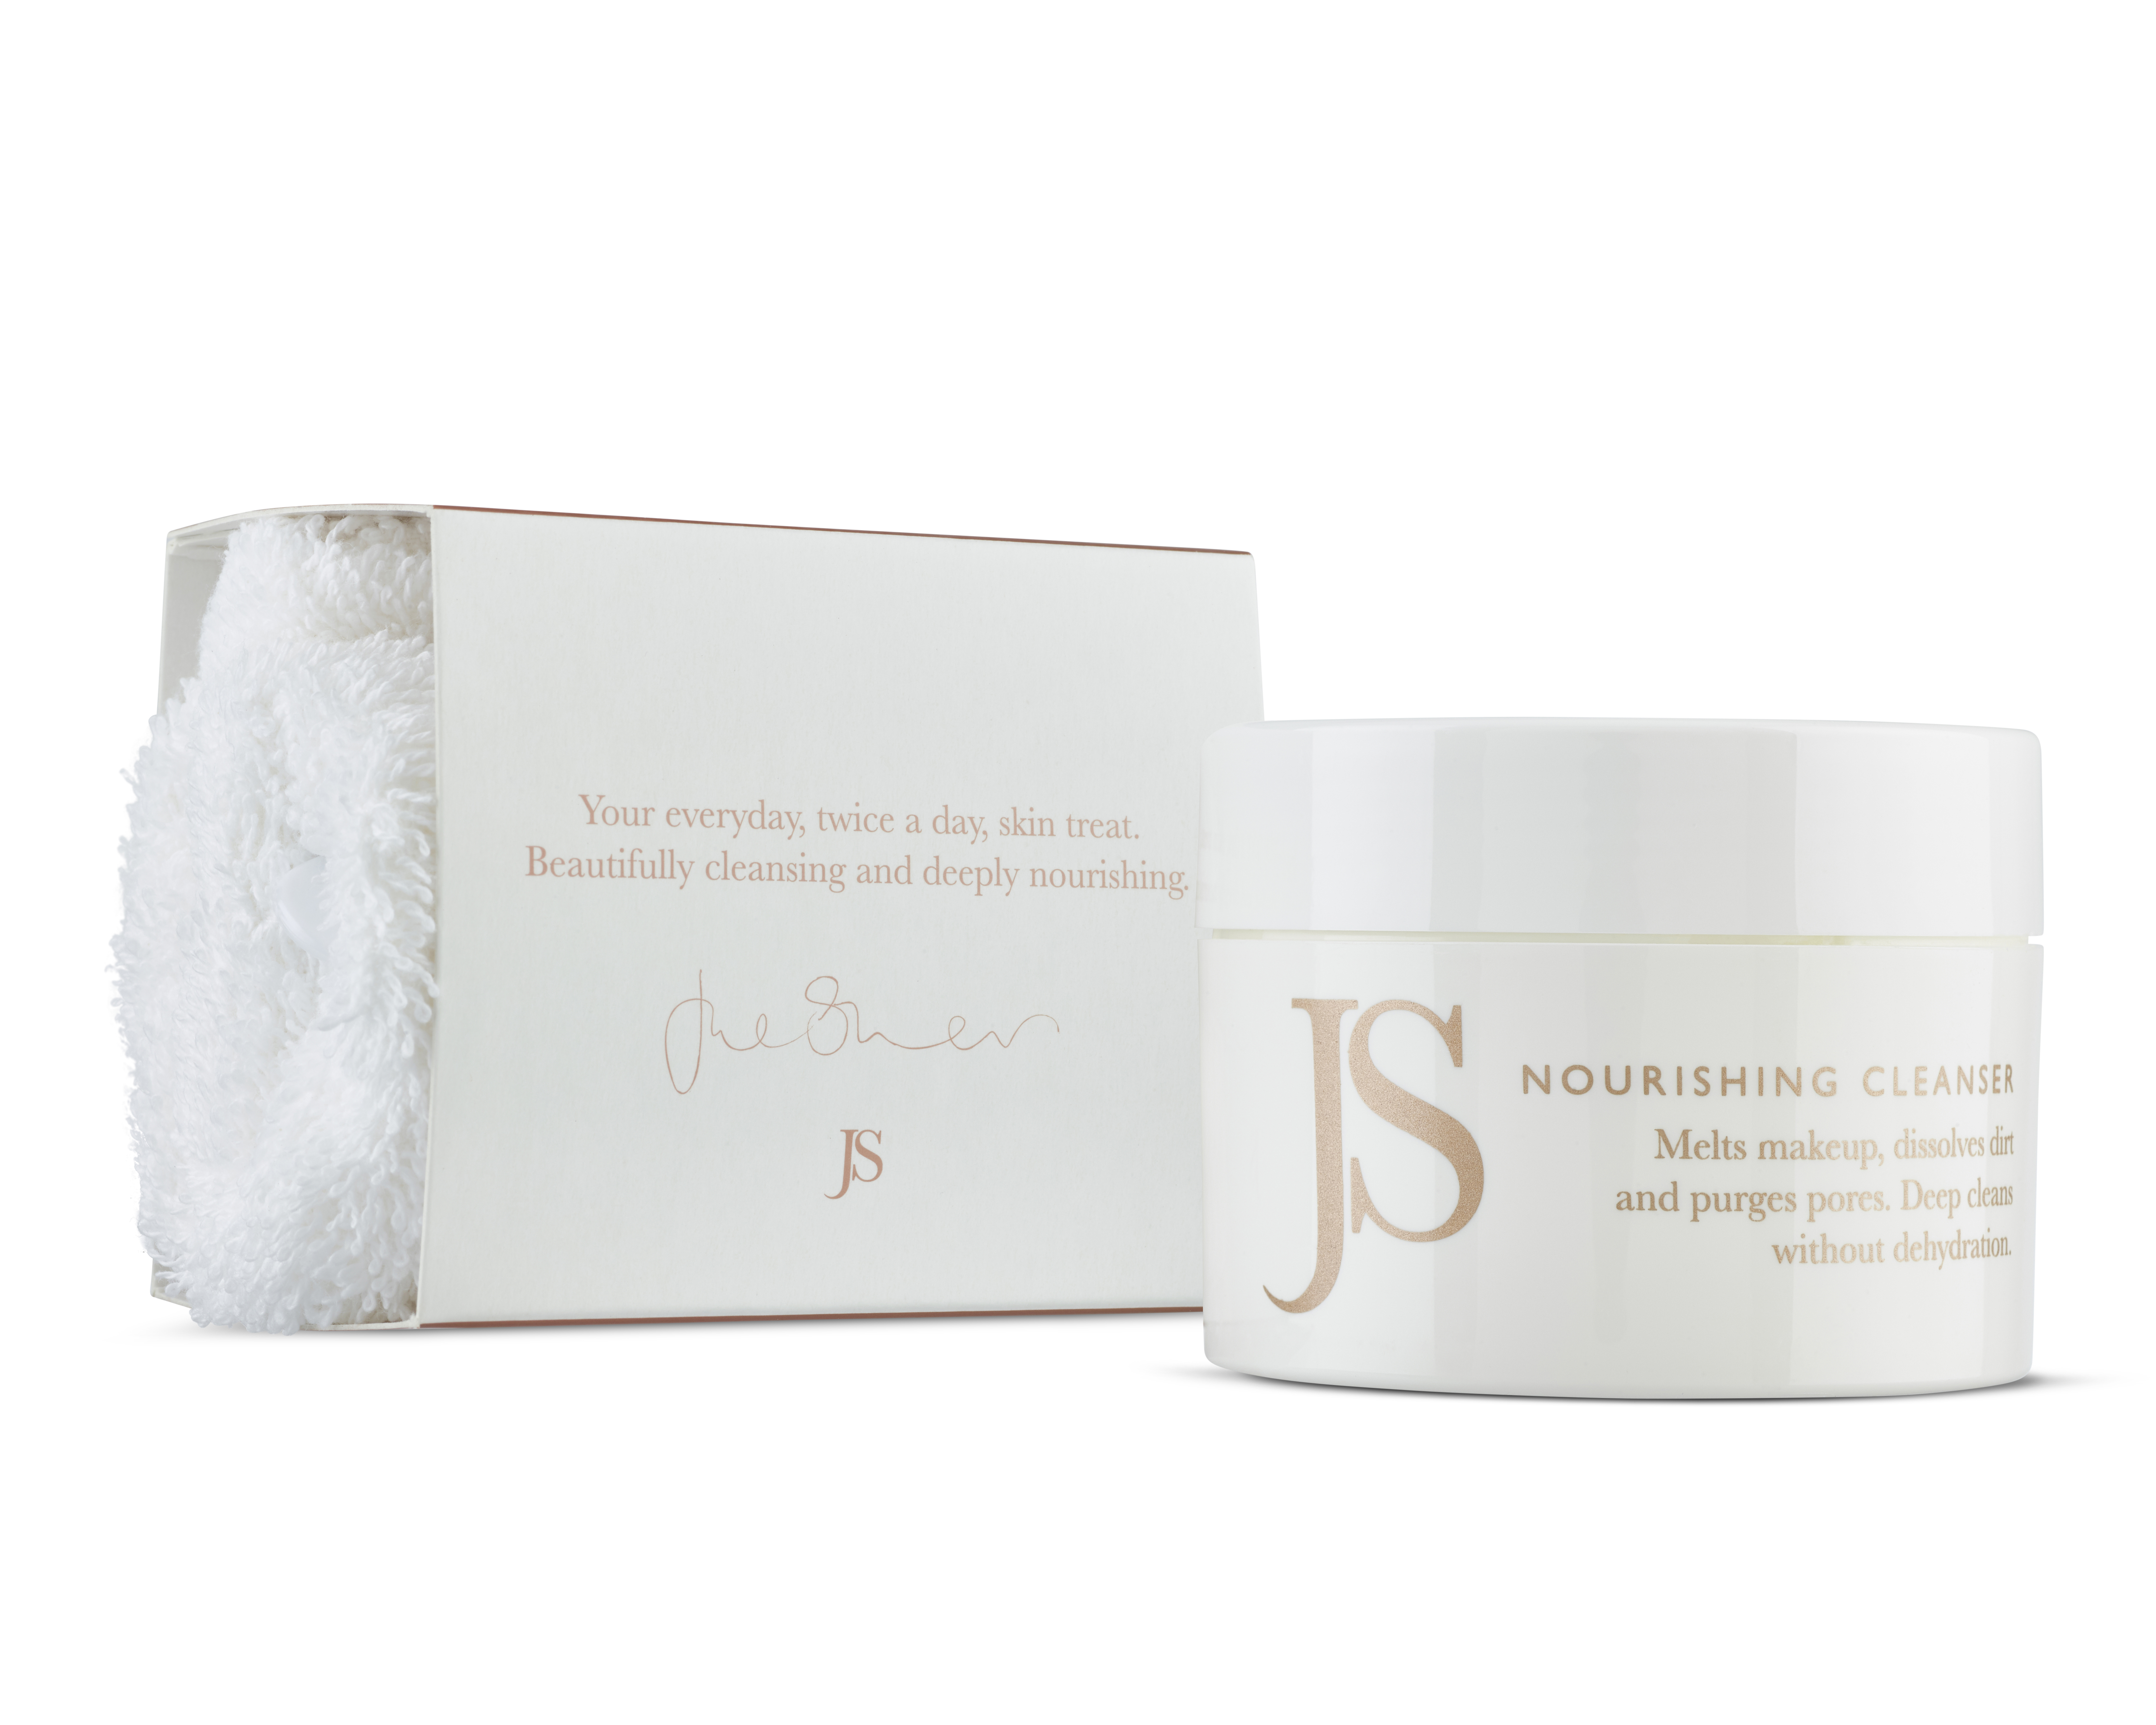 NOURISHING CLEANSER 100ml Jar plus Mitt Pack with Drop Shadow